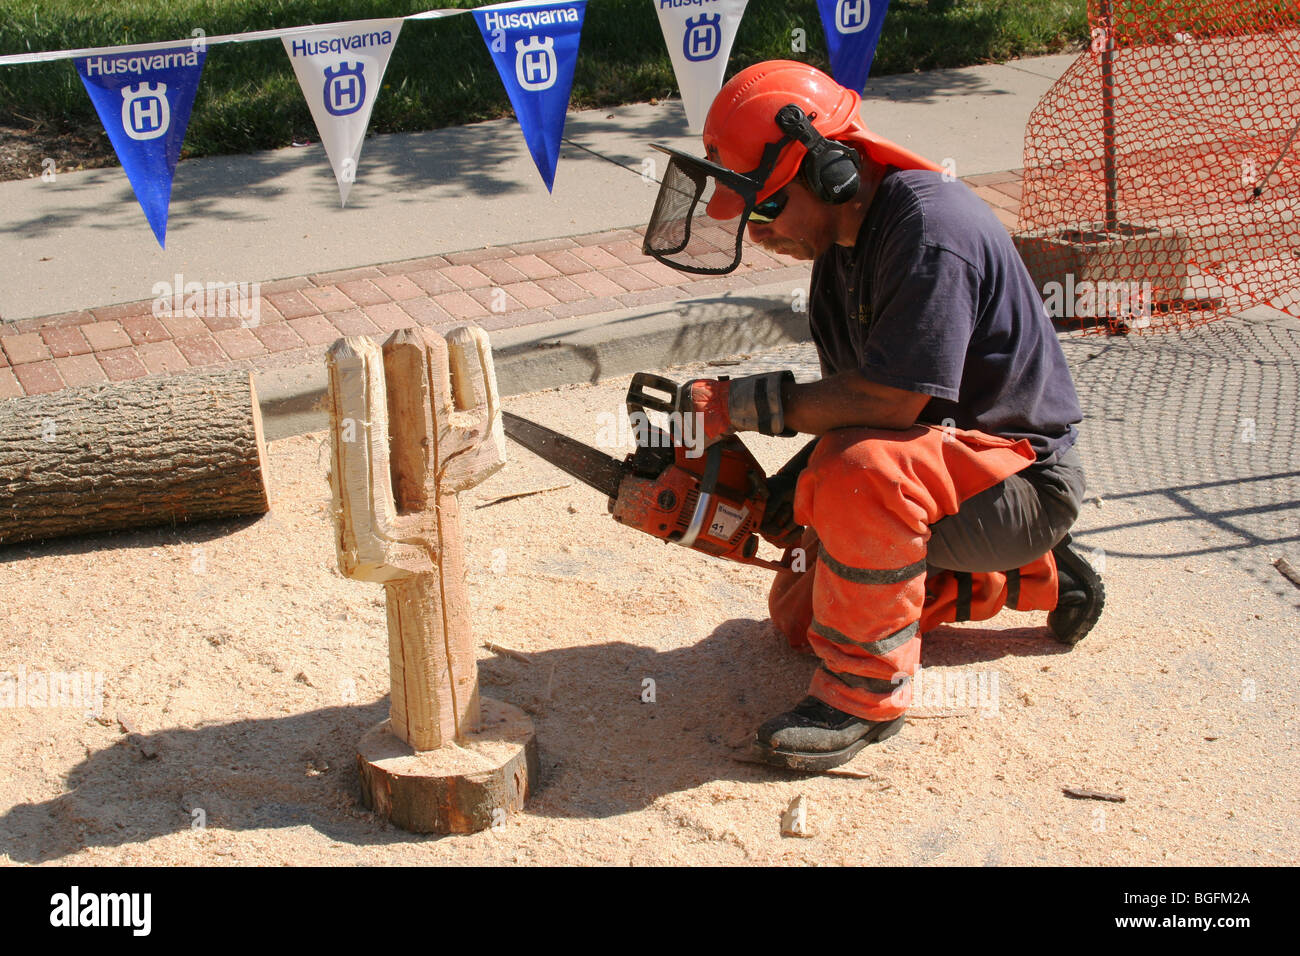 Chainsaw Artist Sculpture in wood by Keith Maxwell, Beavercreek, Dayton, Ohio, USA. Husqvarna brand banners visible. - Stock Image